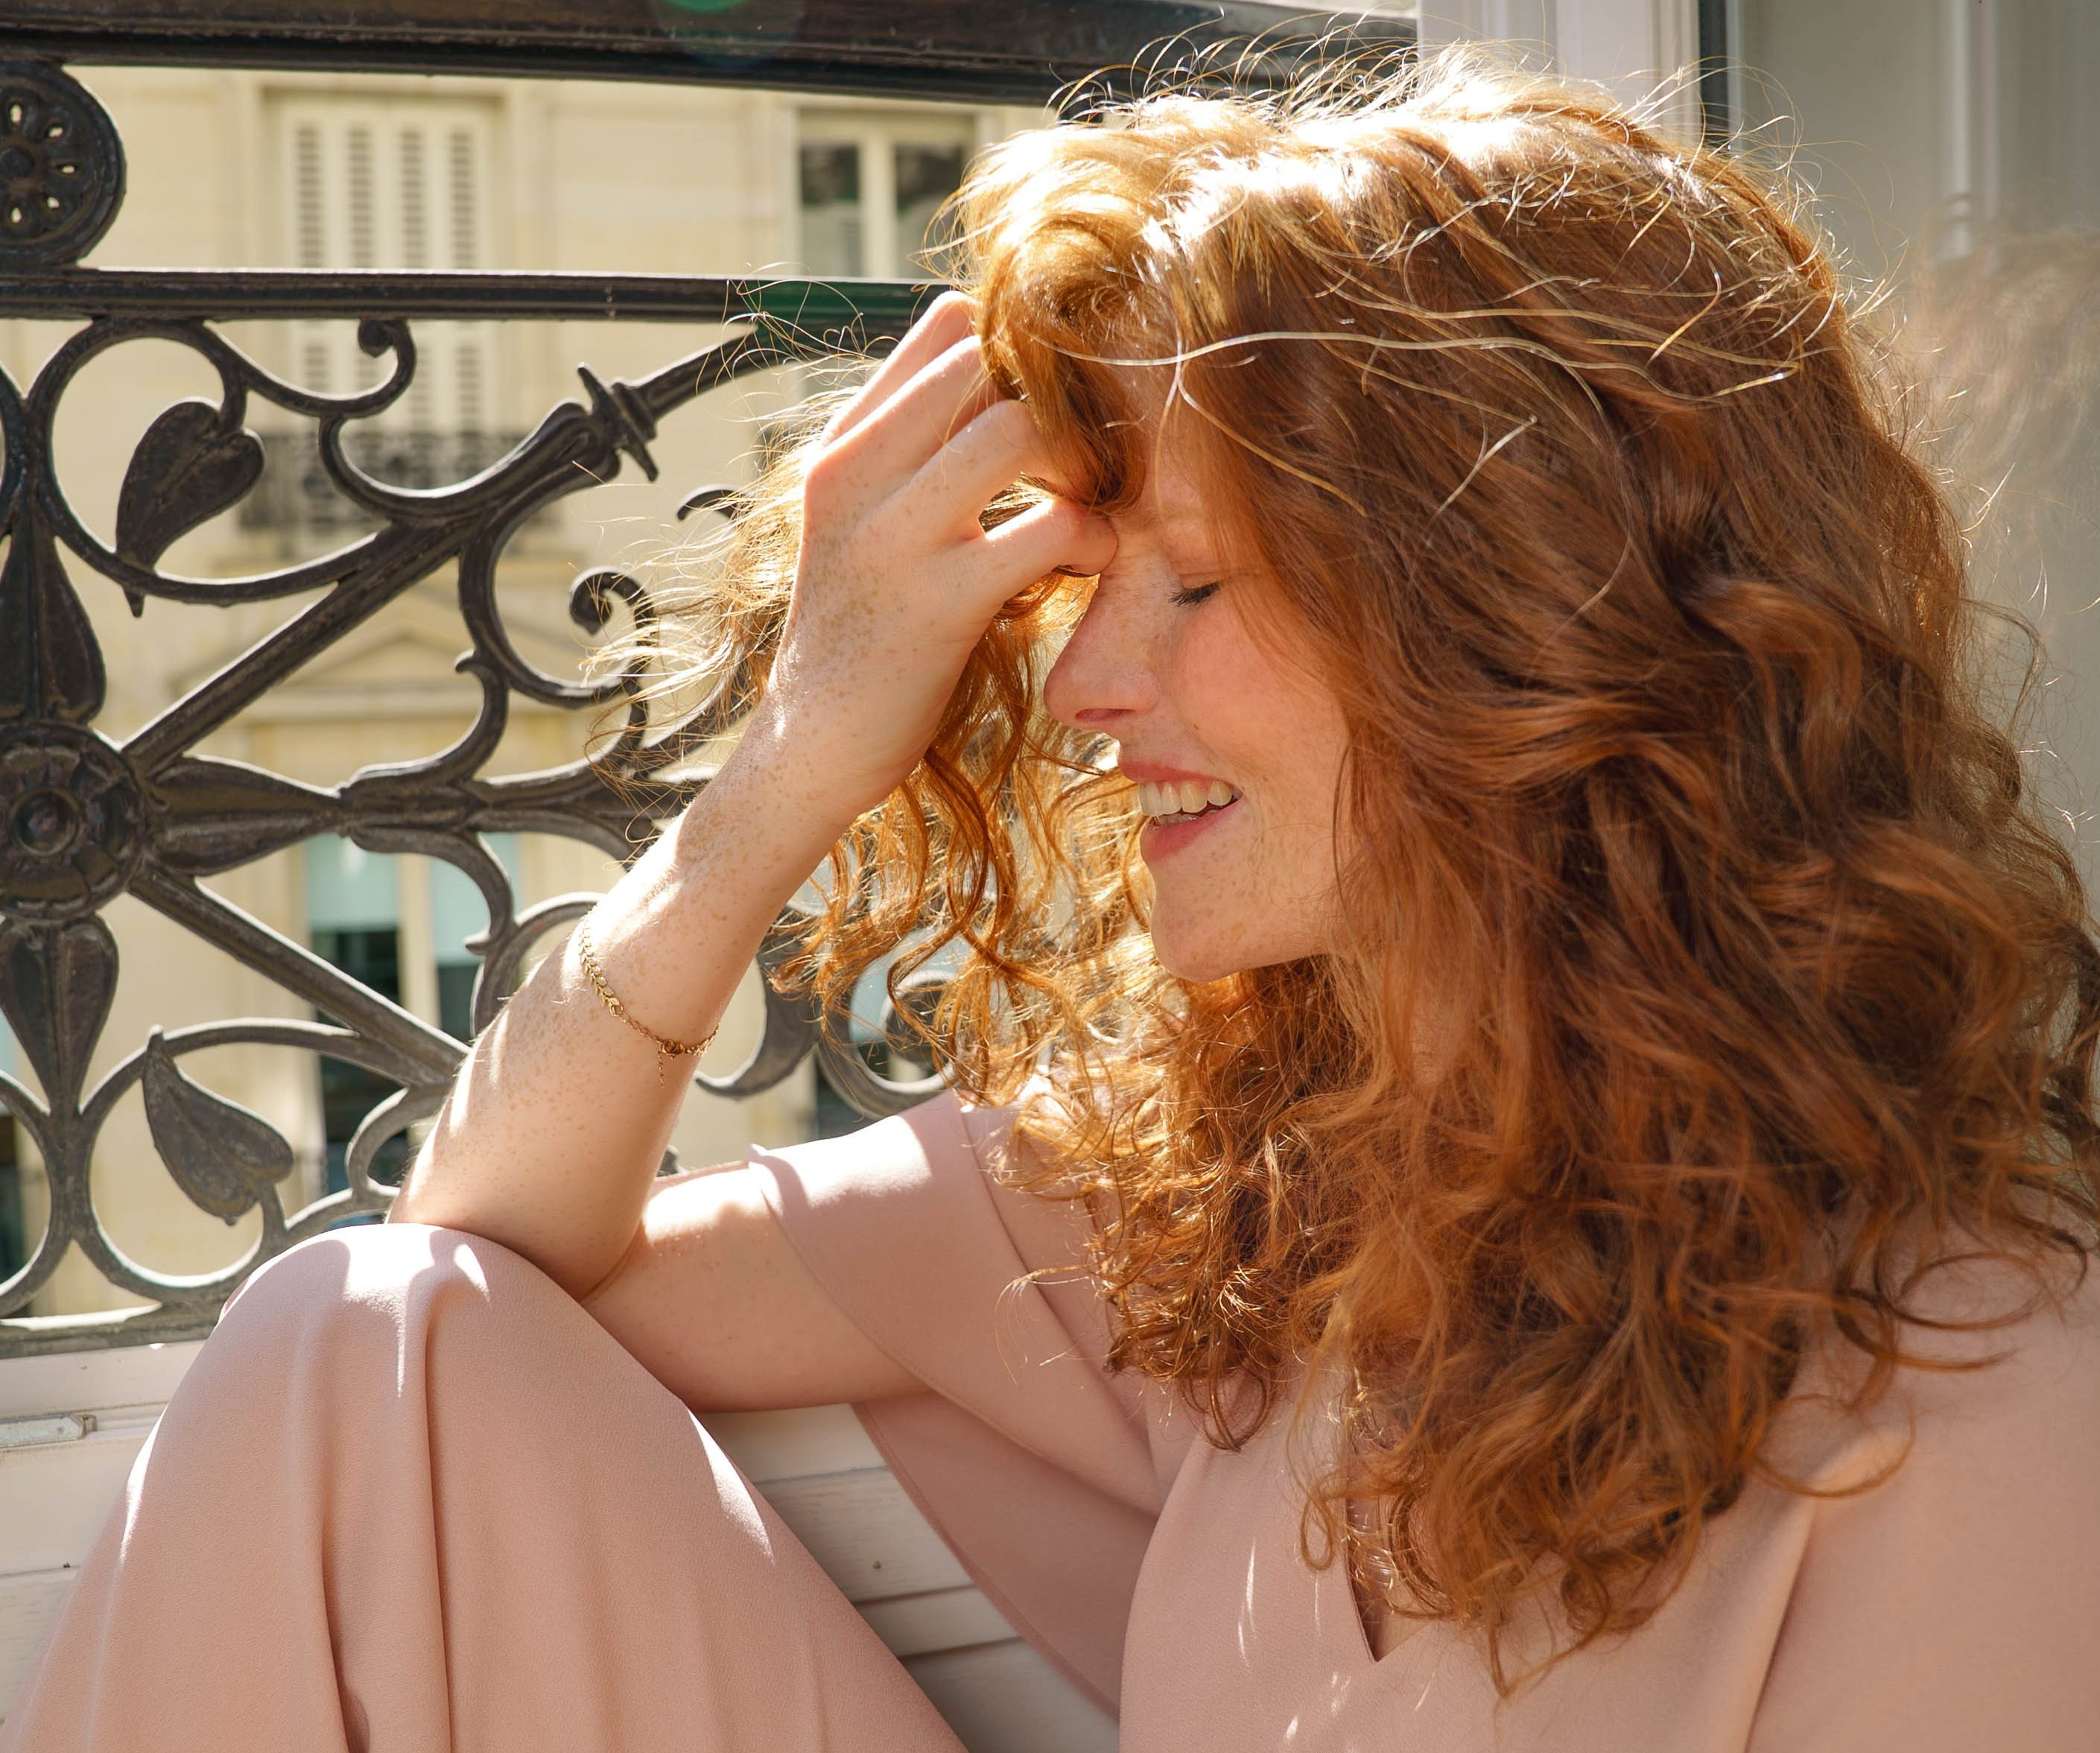 side profile of ginger haired women smiling